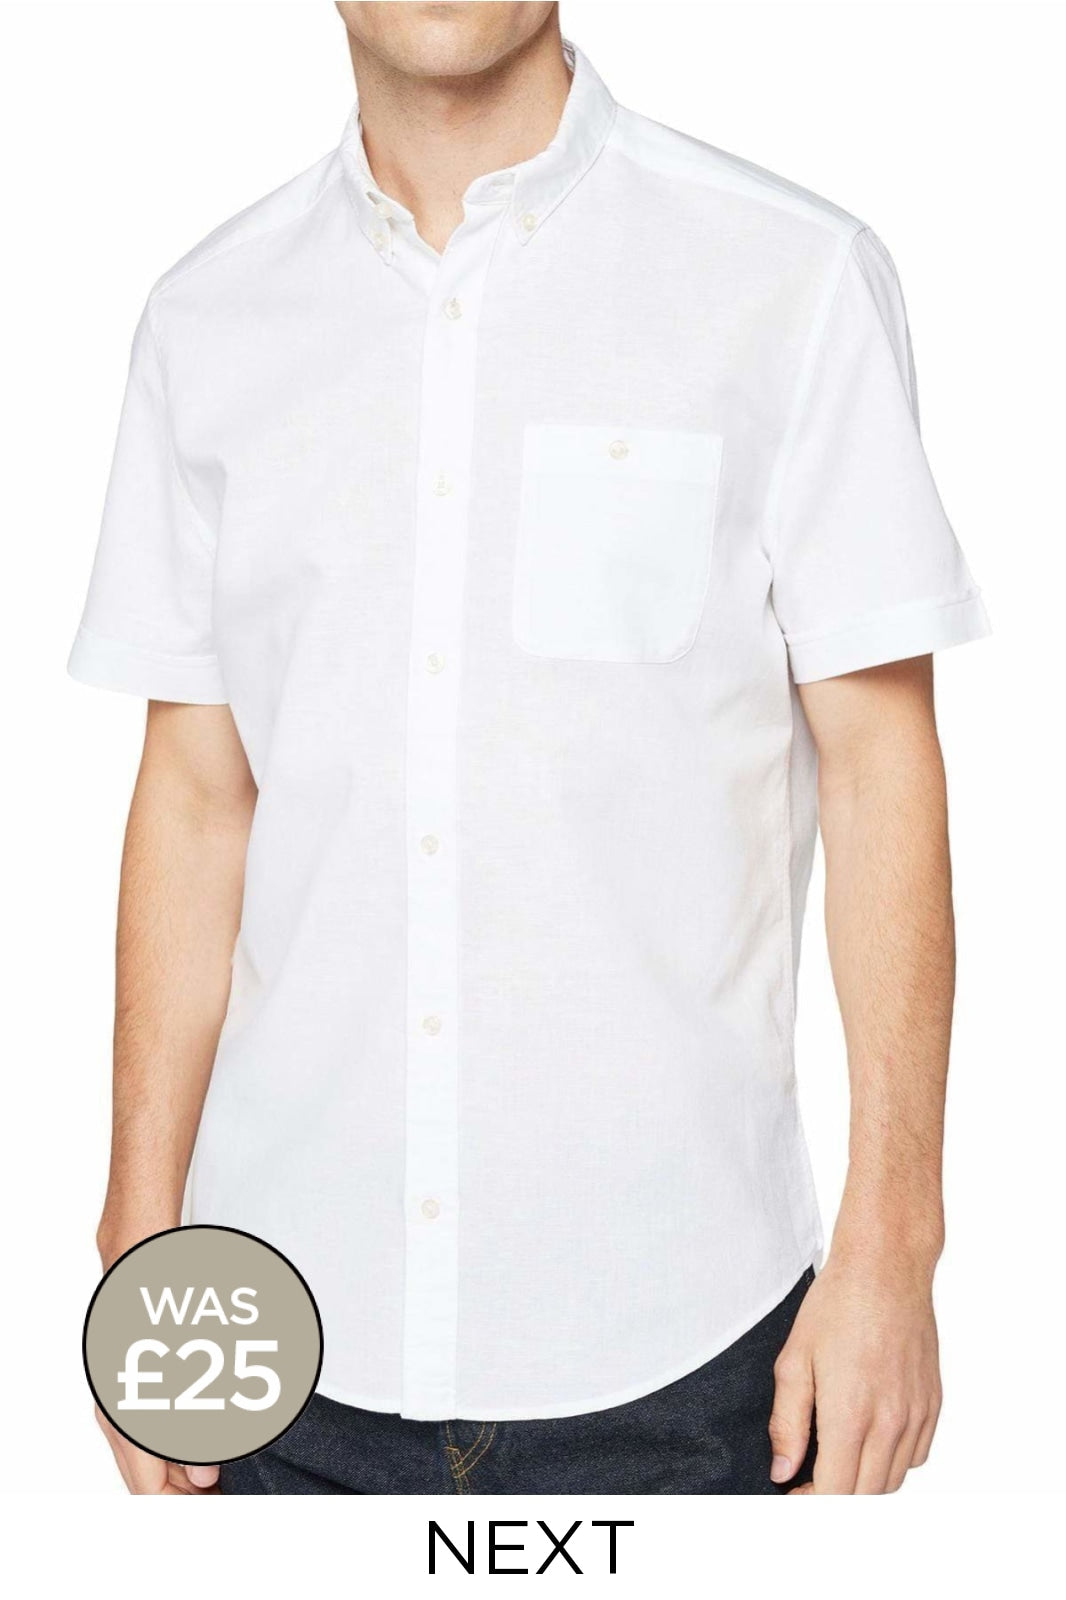 Next Mens Short Sleeve Linen Shirt | 3XL / White Secret Label